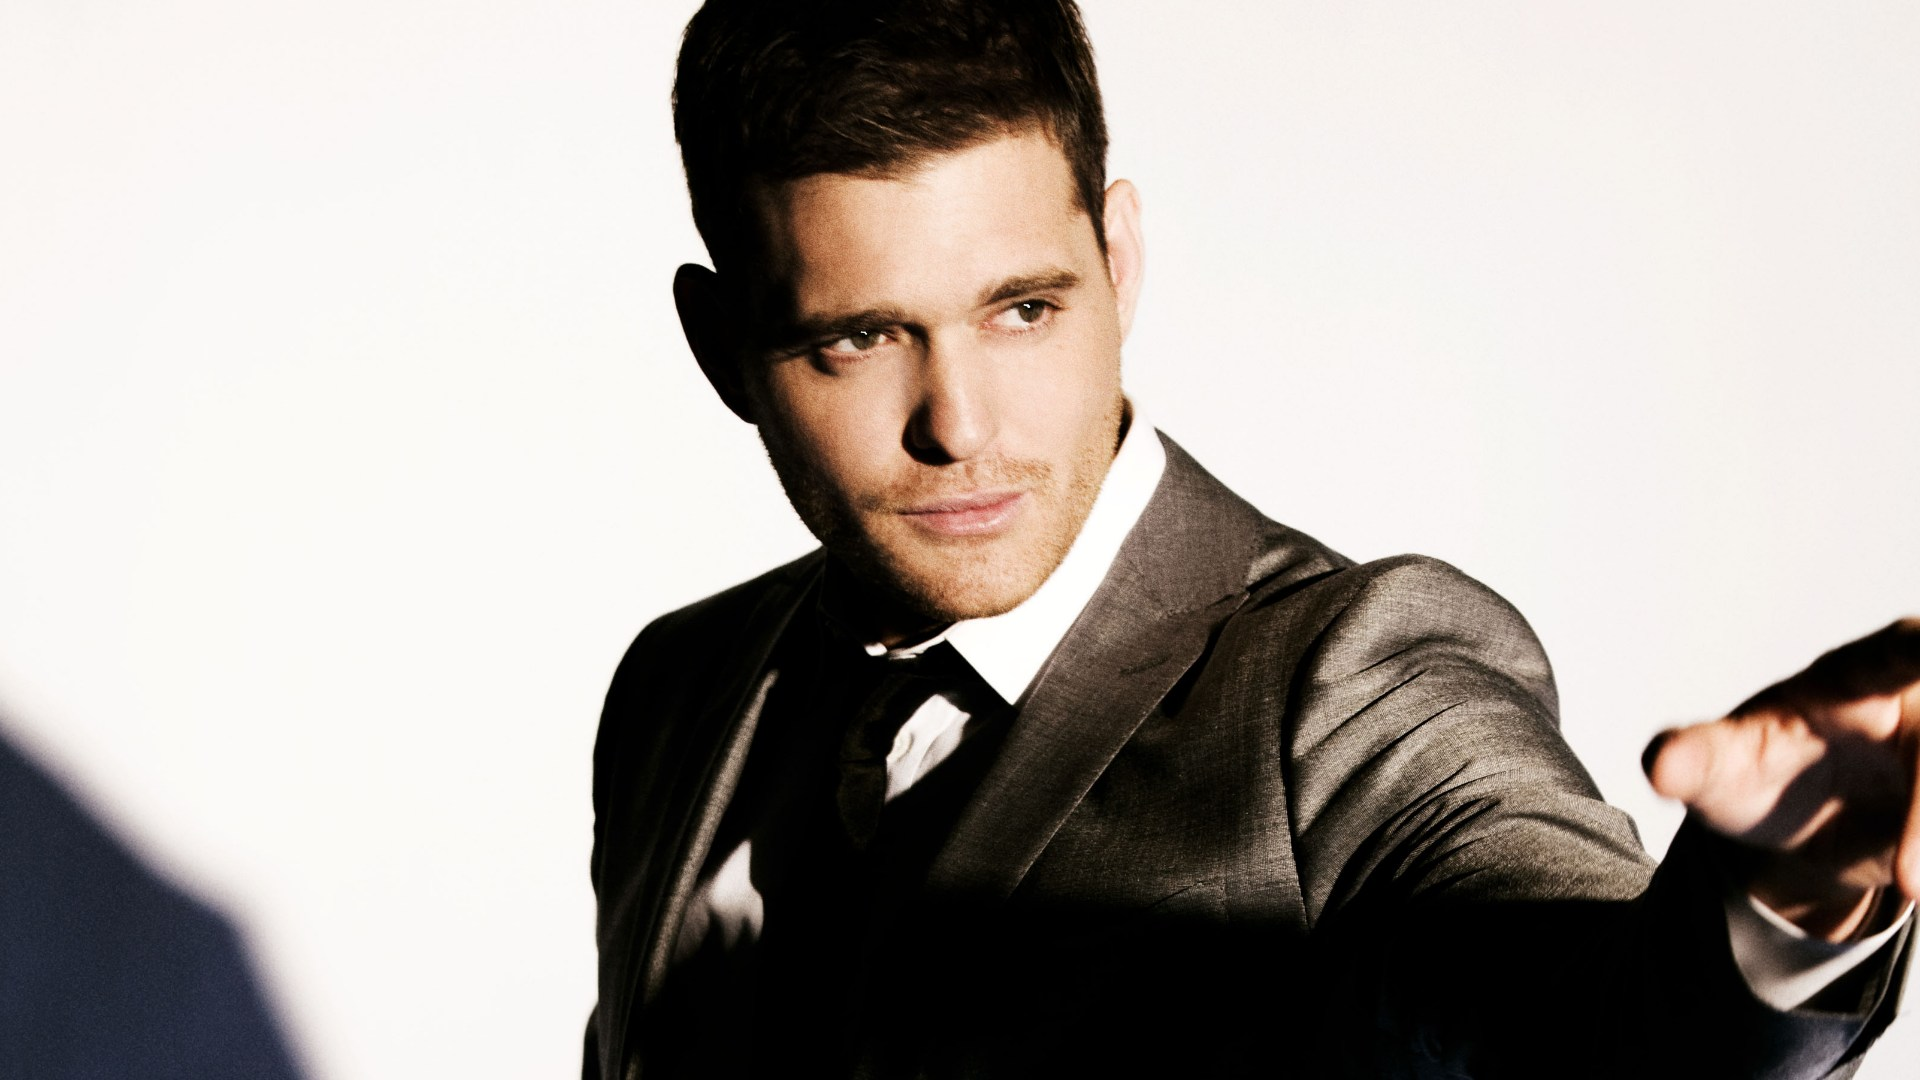 michael buble - photo #24